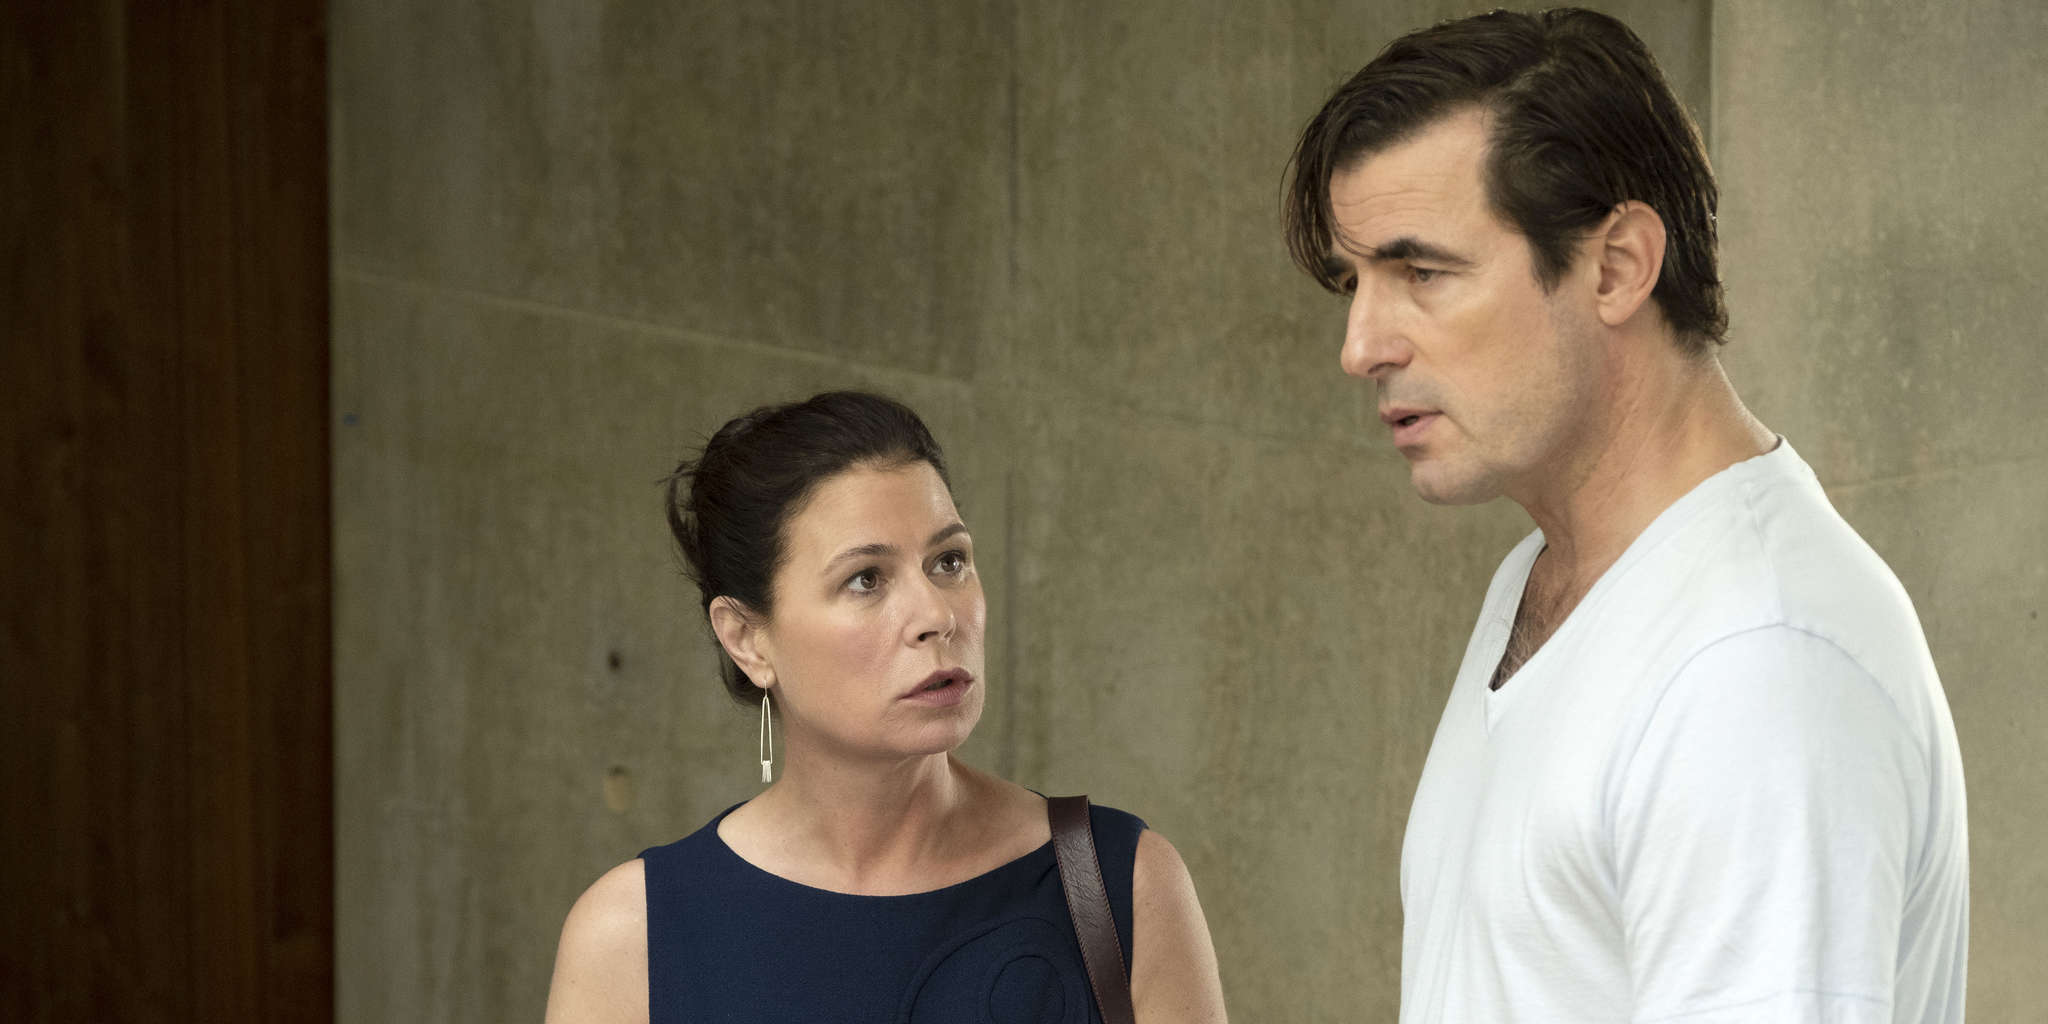 Maura Tierney and Claes Bang in The Affair (2014)